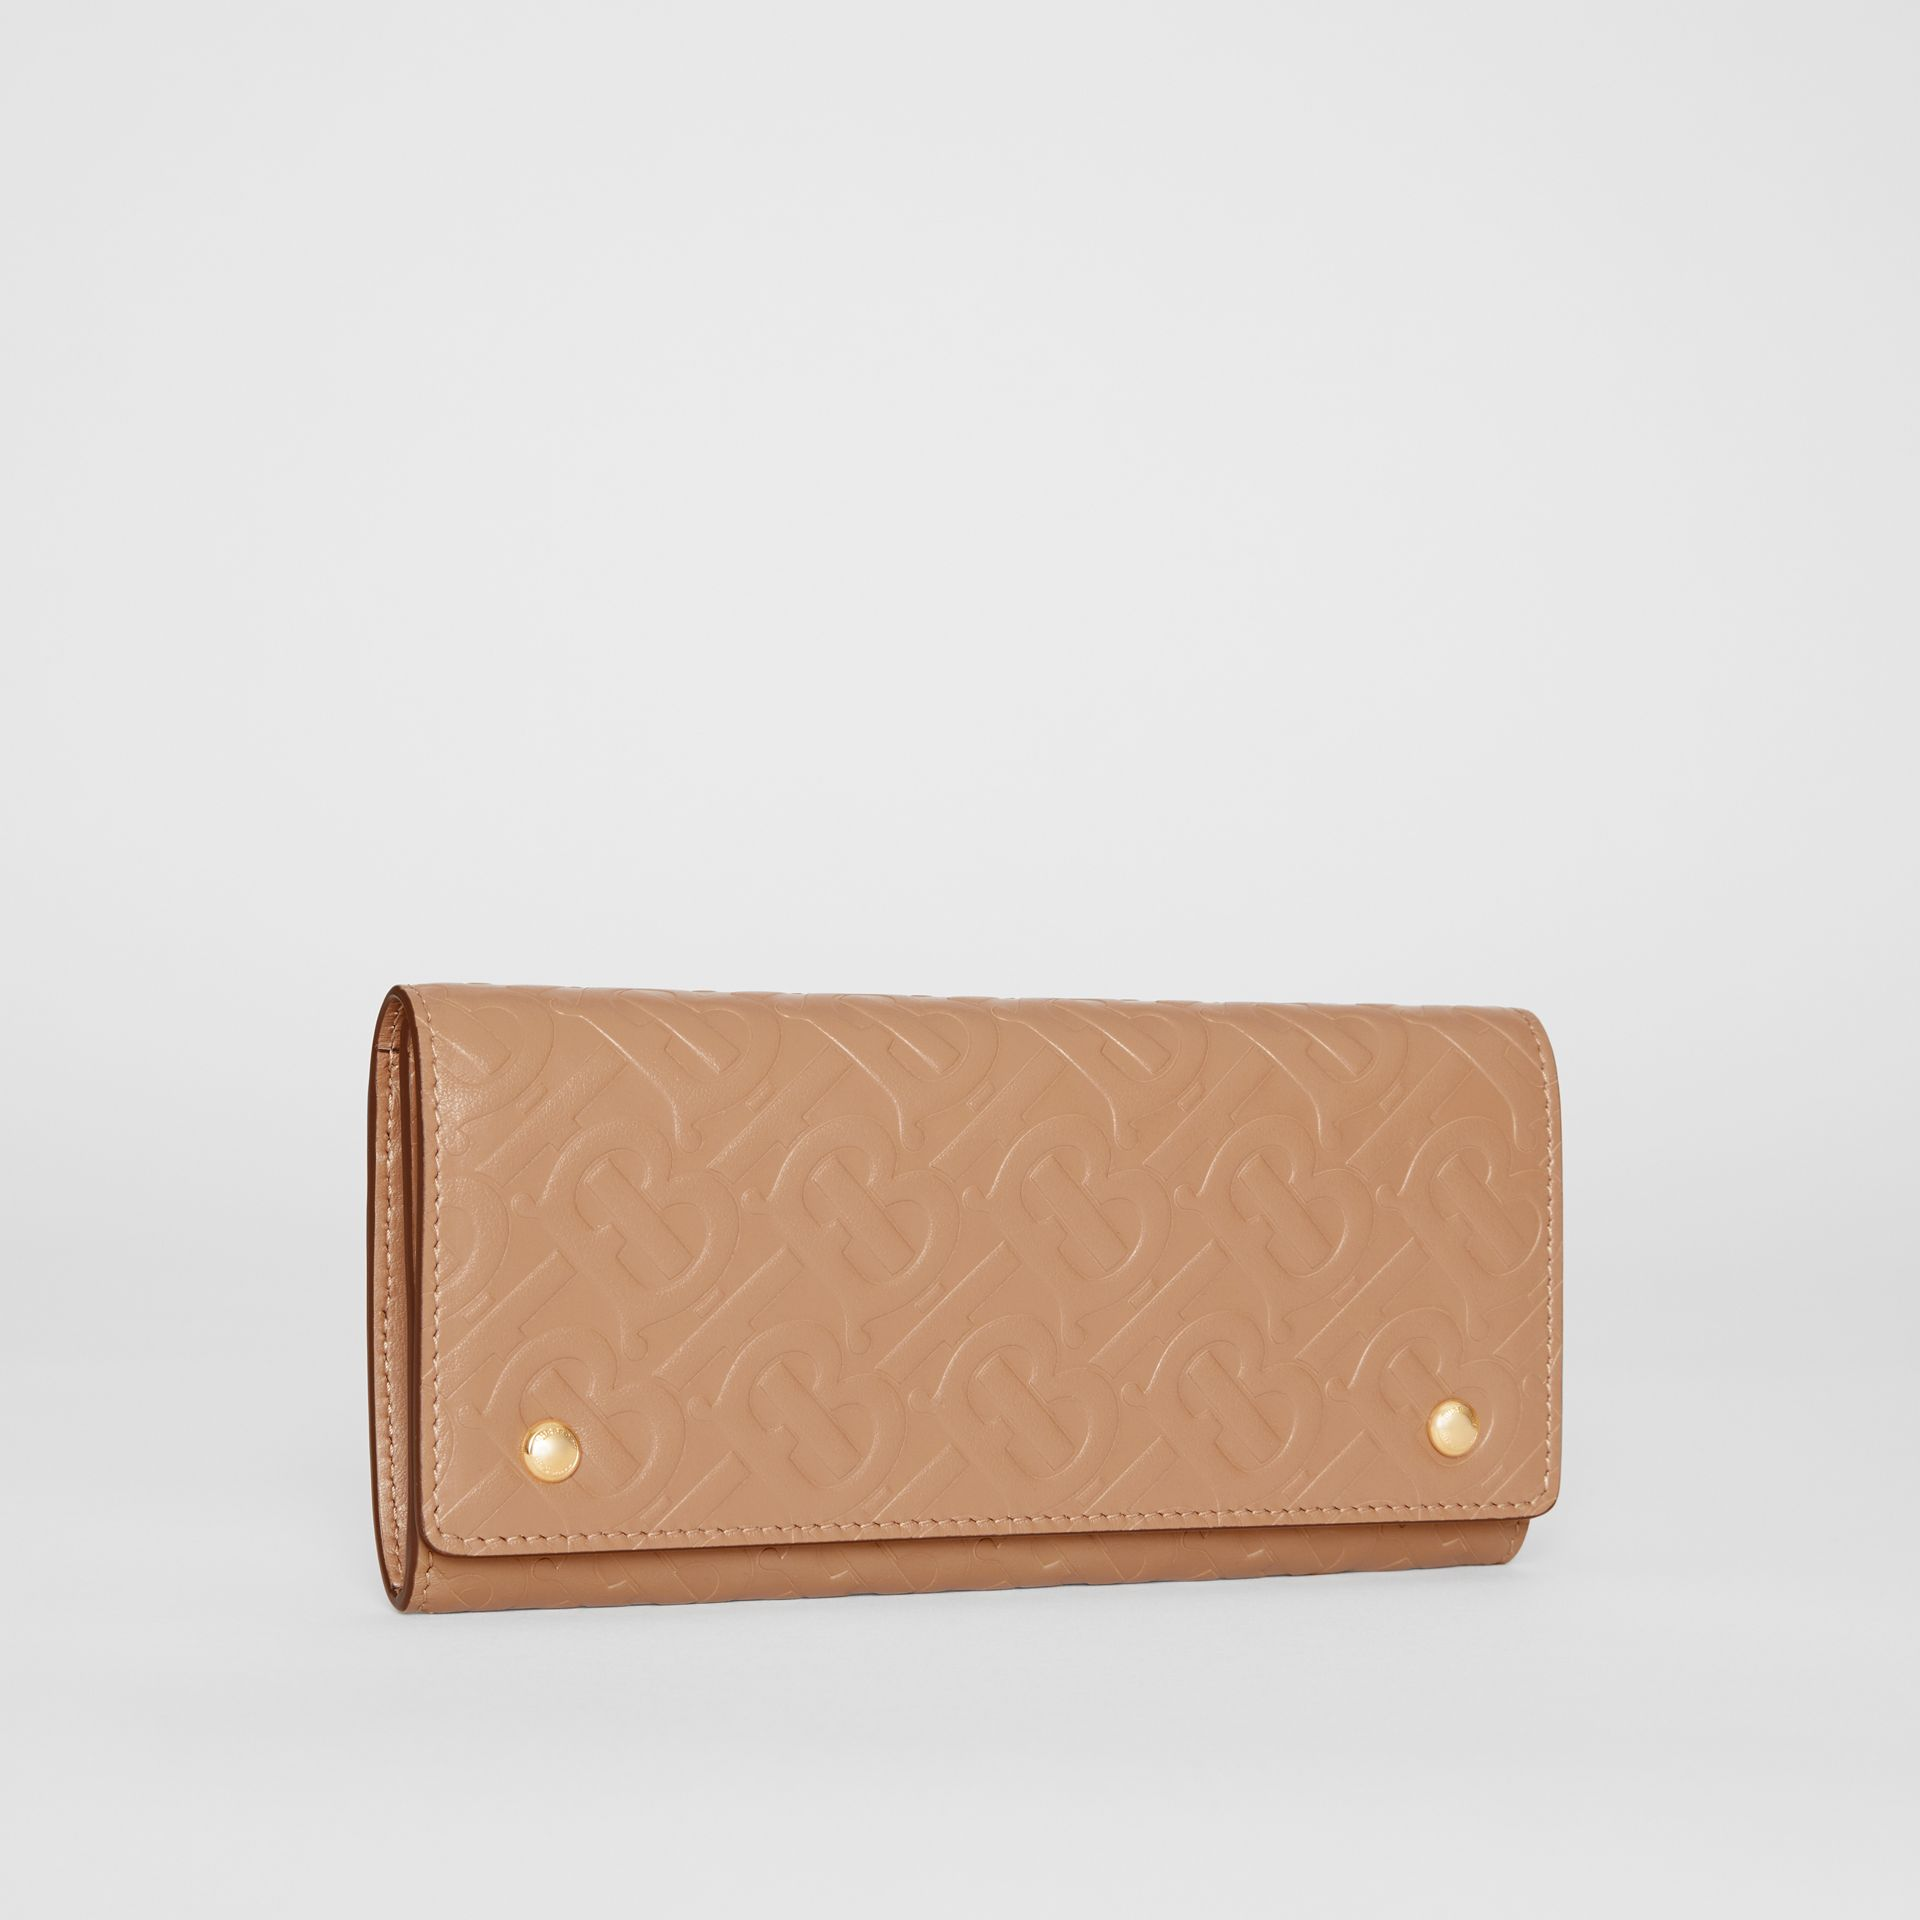 Monogram Leather Continental Wallet in Light Camel - Women | Burberry United Kingdom - gallery image 4